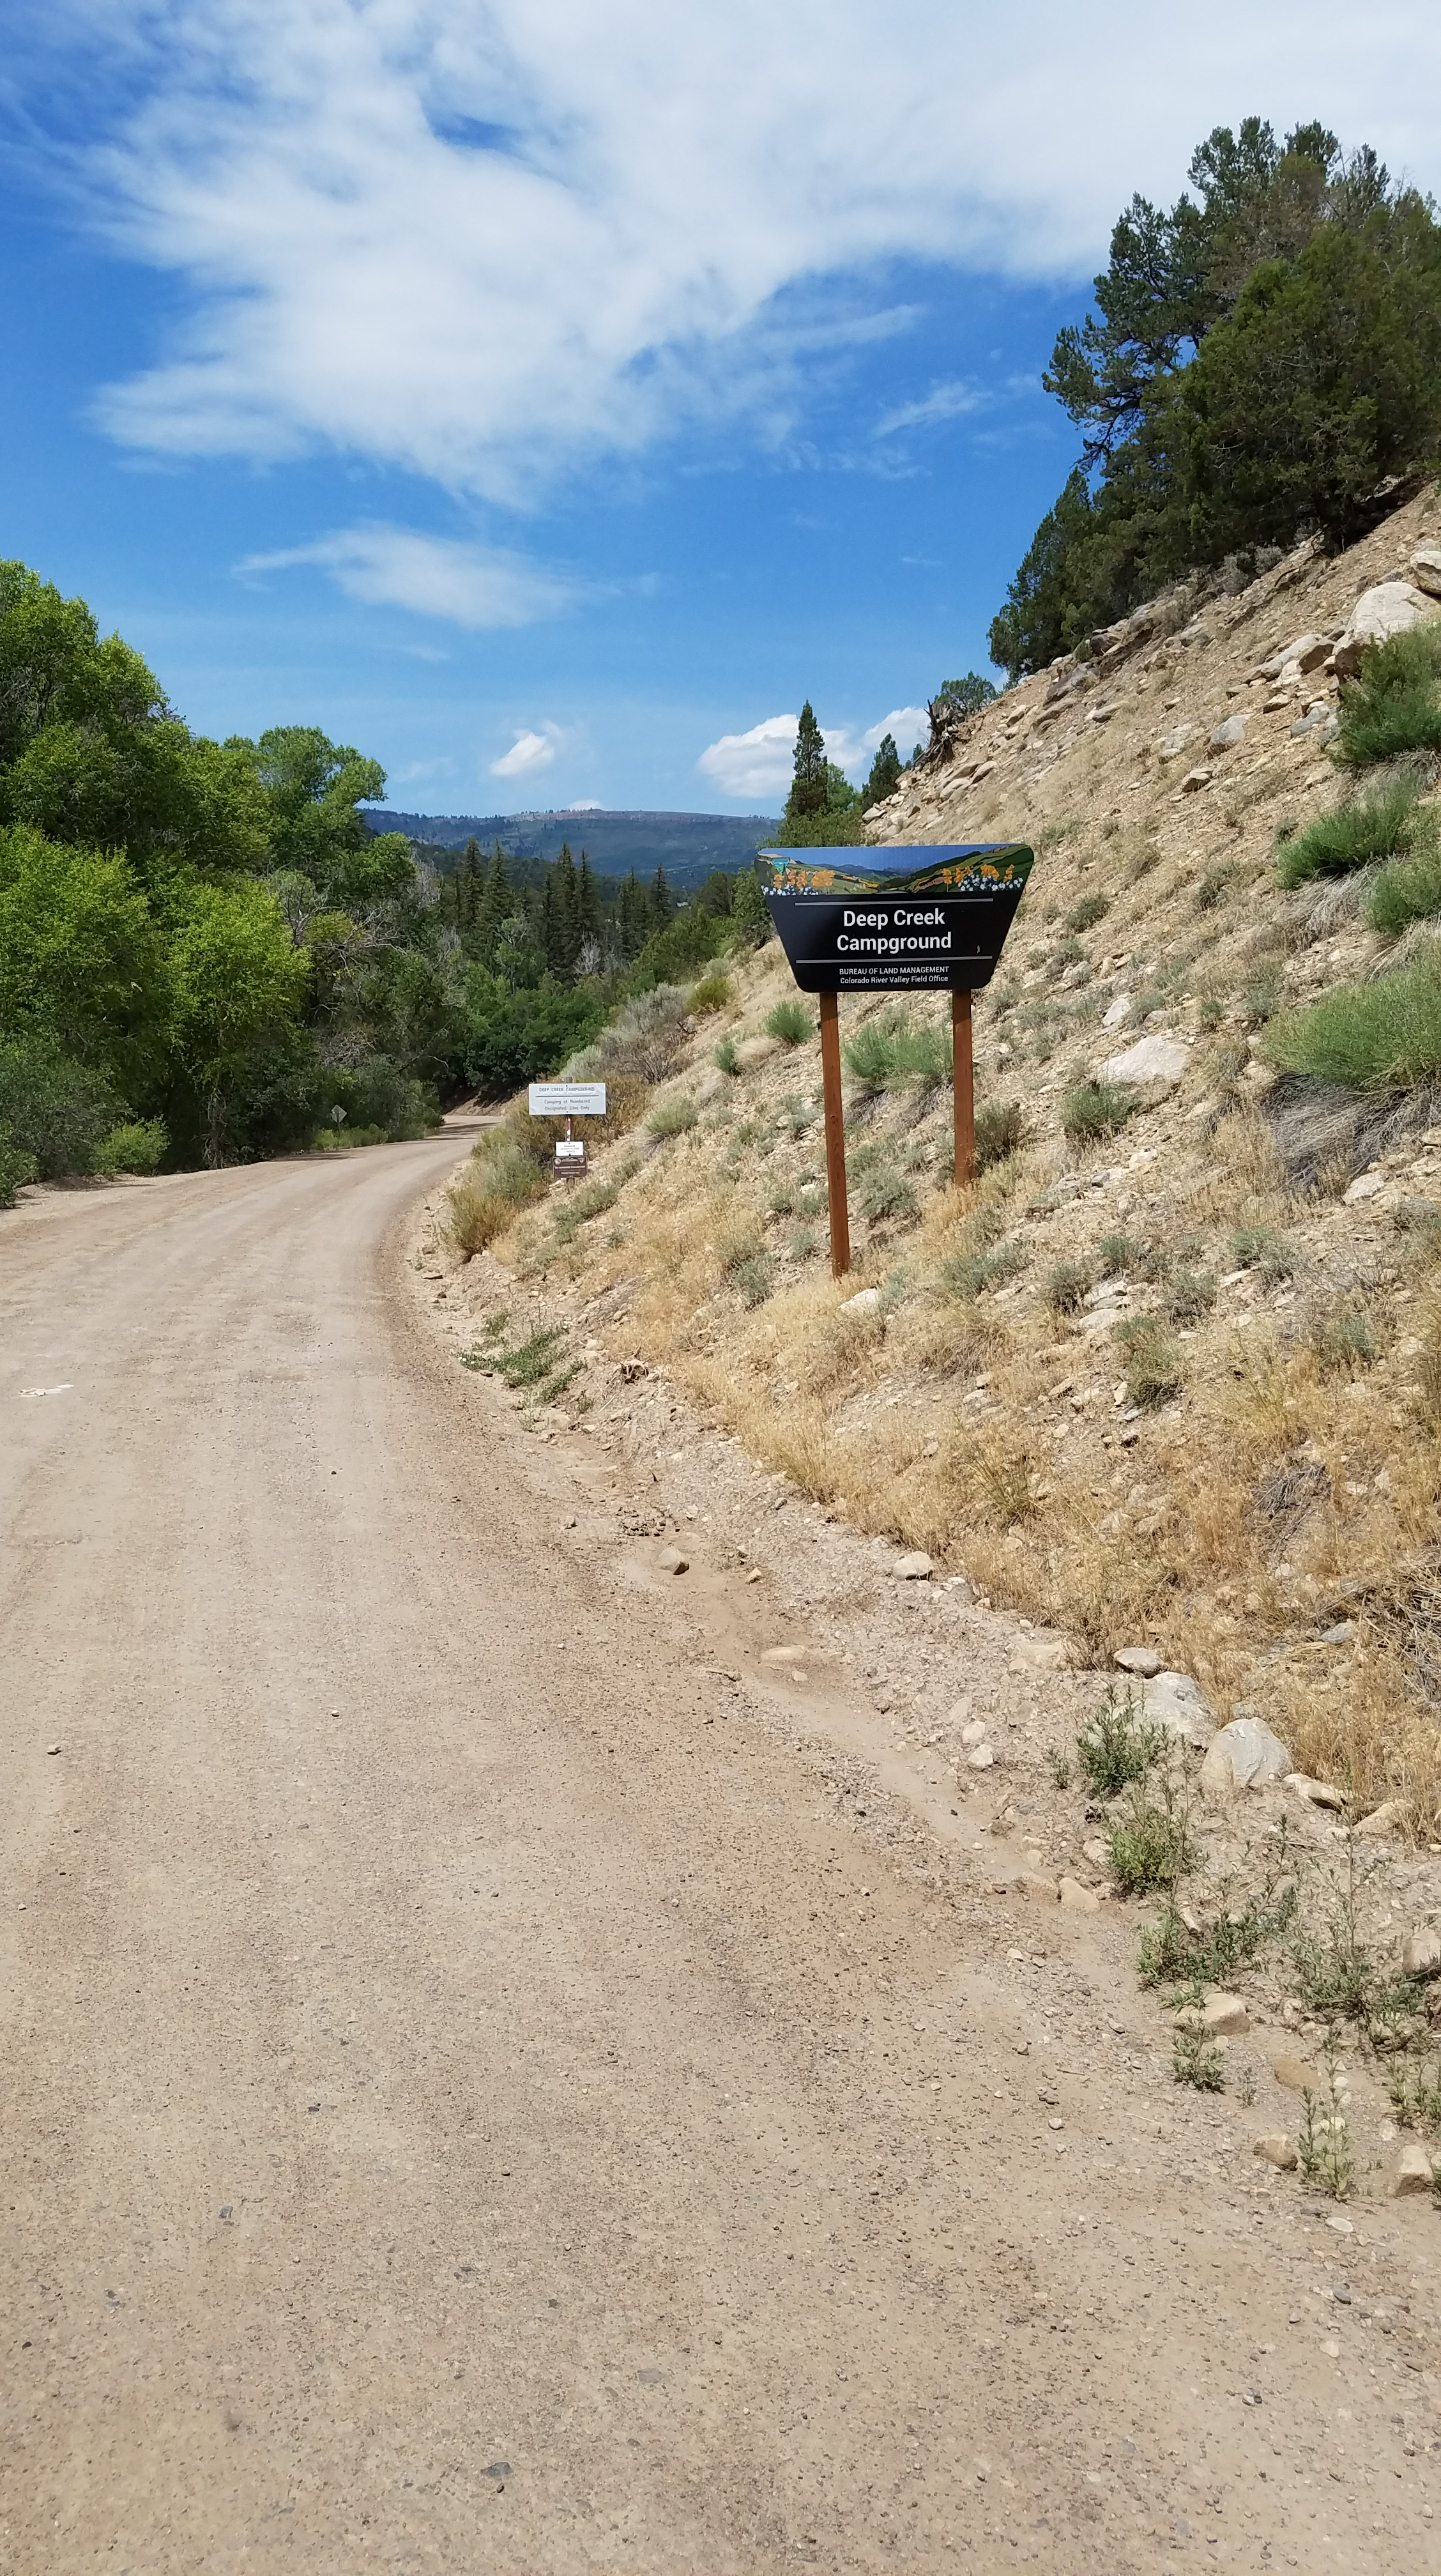 Road leading to the Deep Creek camping area.